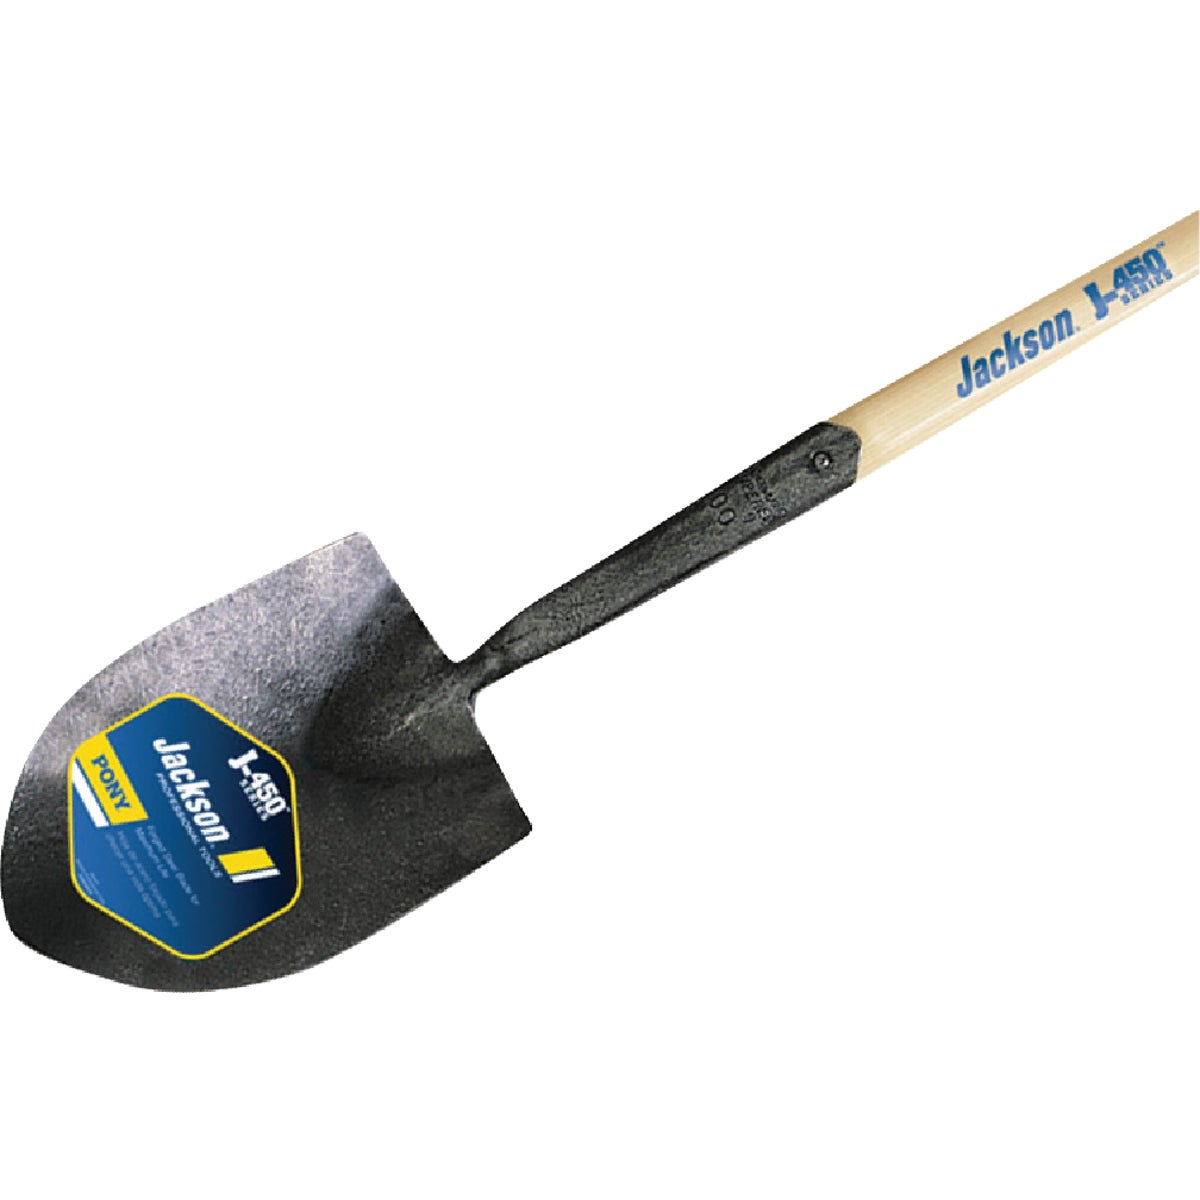 IRRIGATION SHOVEL - 1259100 by Ames True Temper